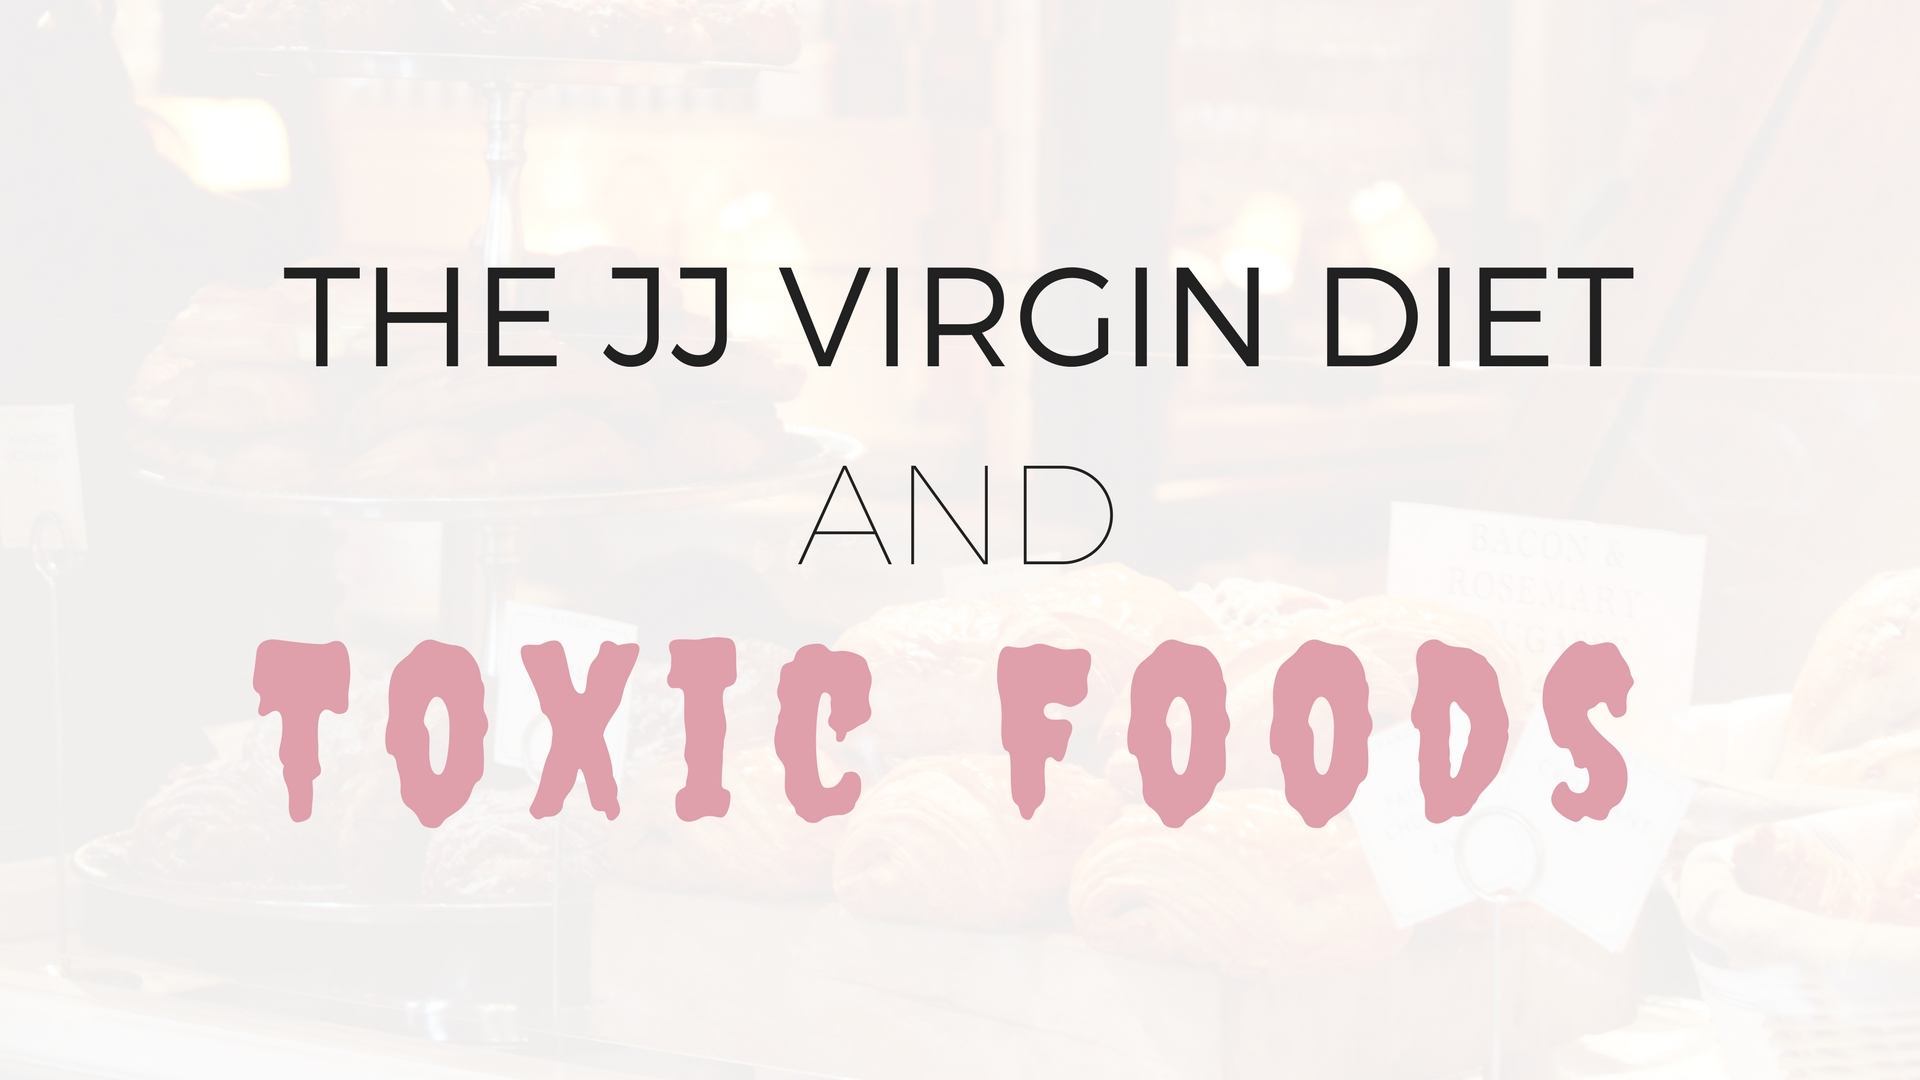 The JJ Virgin Diet and Toxic Foods - Project Get It Together